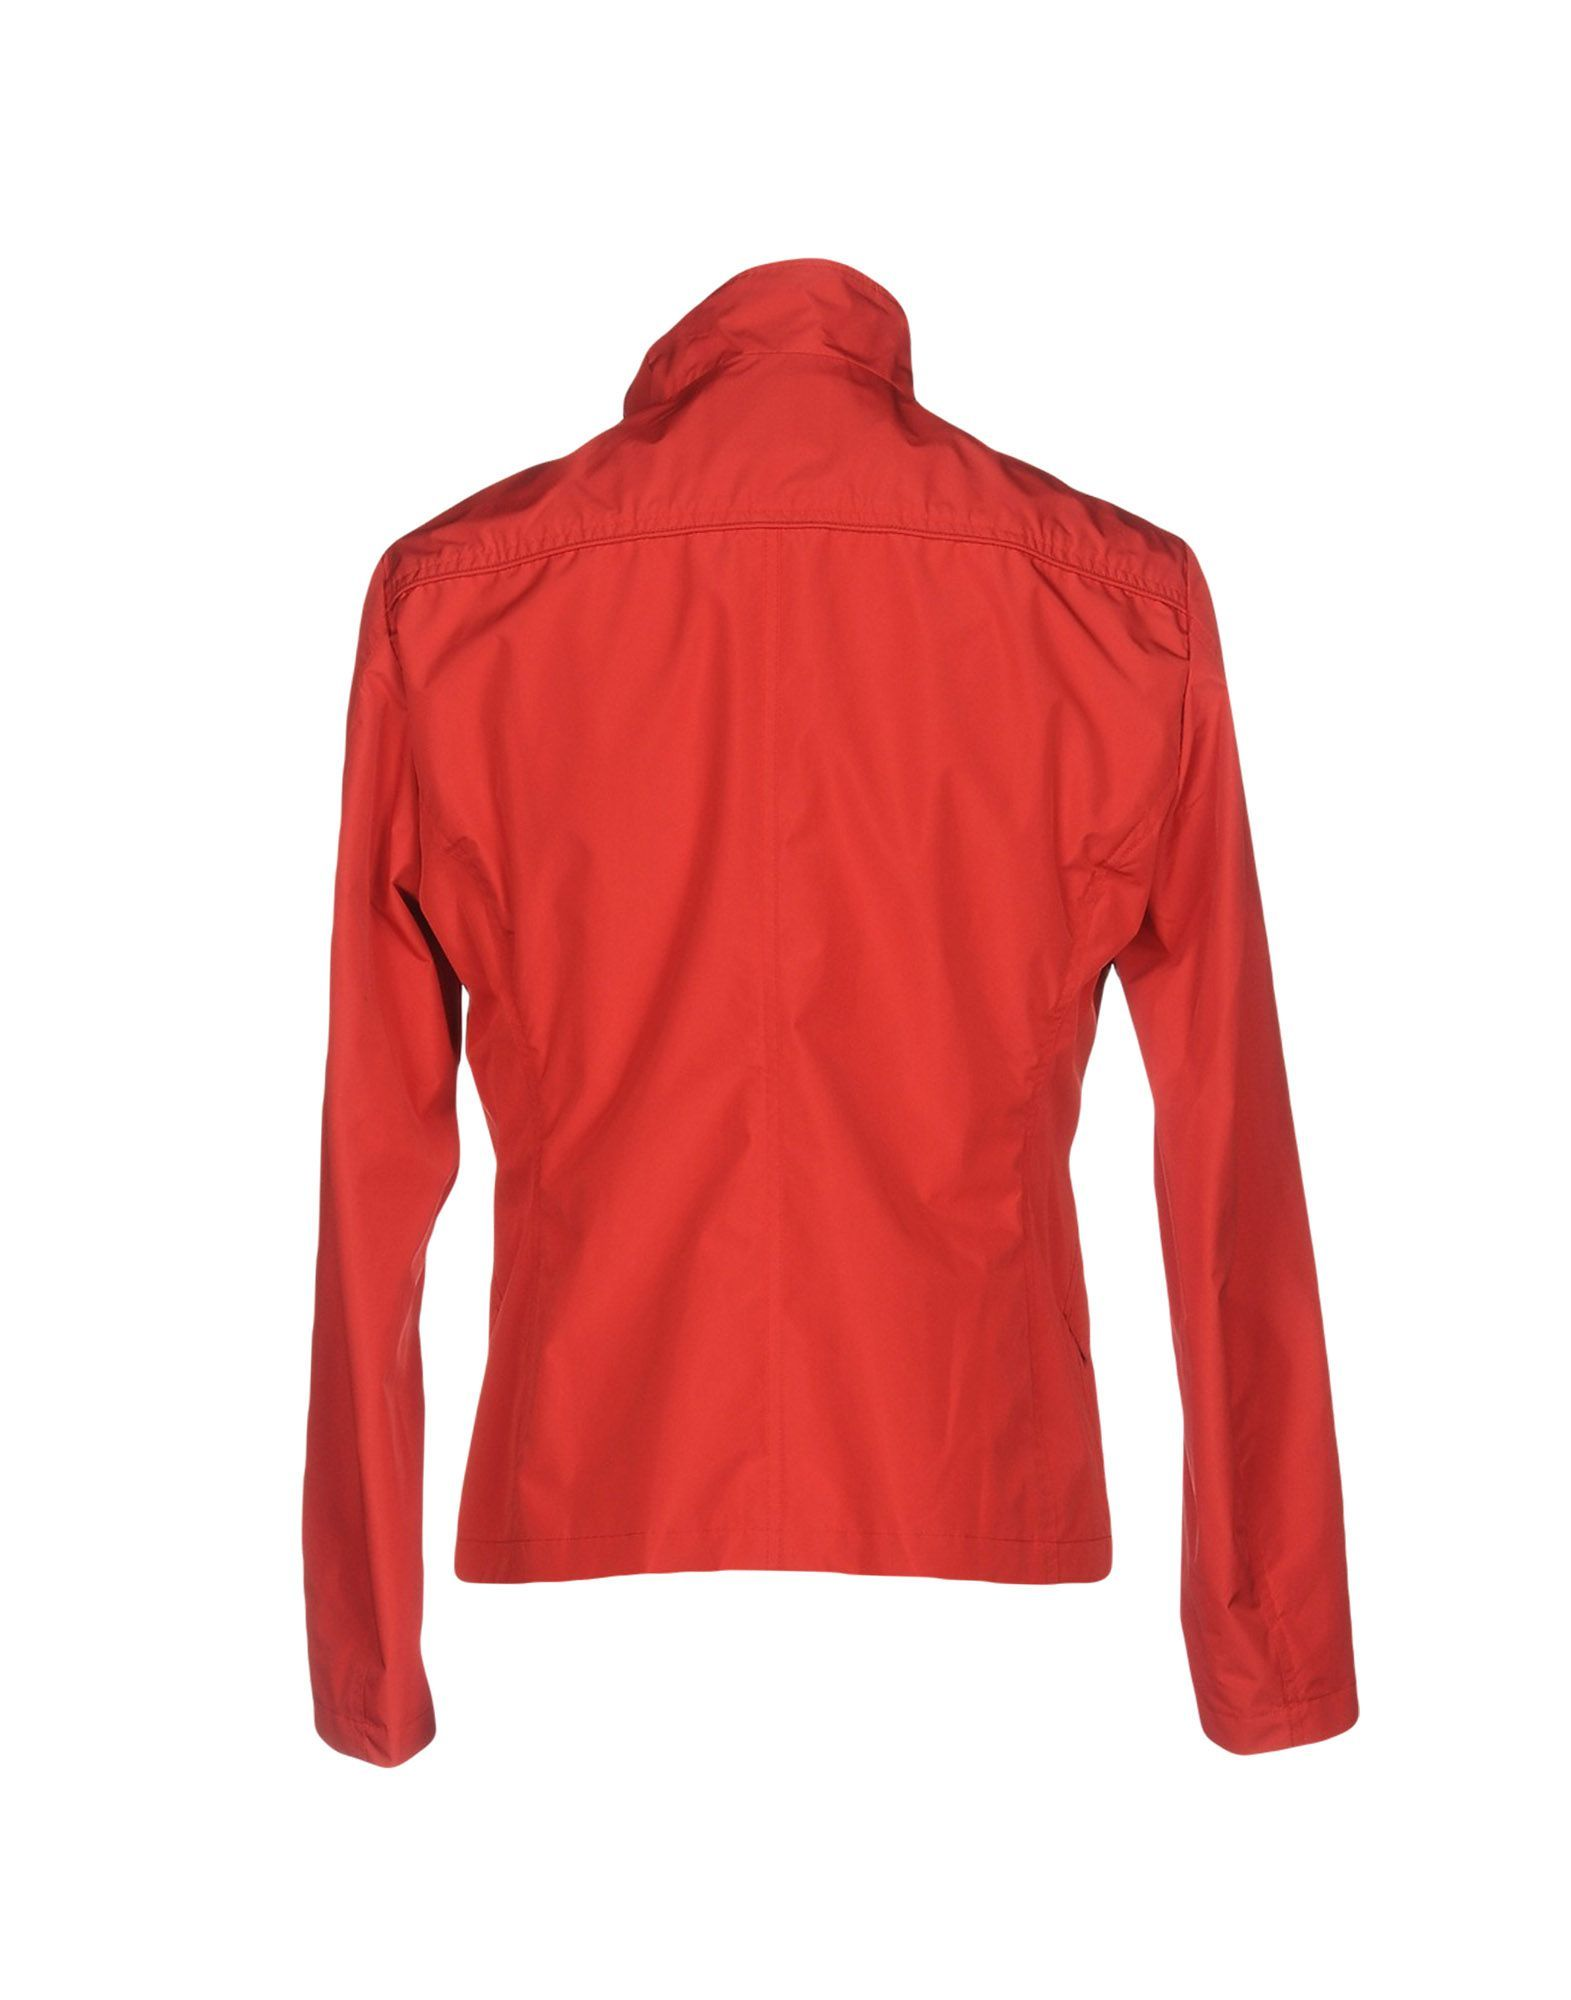 COATS & JACKETS Up To Be Red Man Polyester